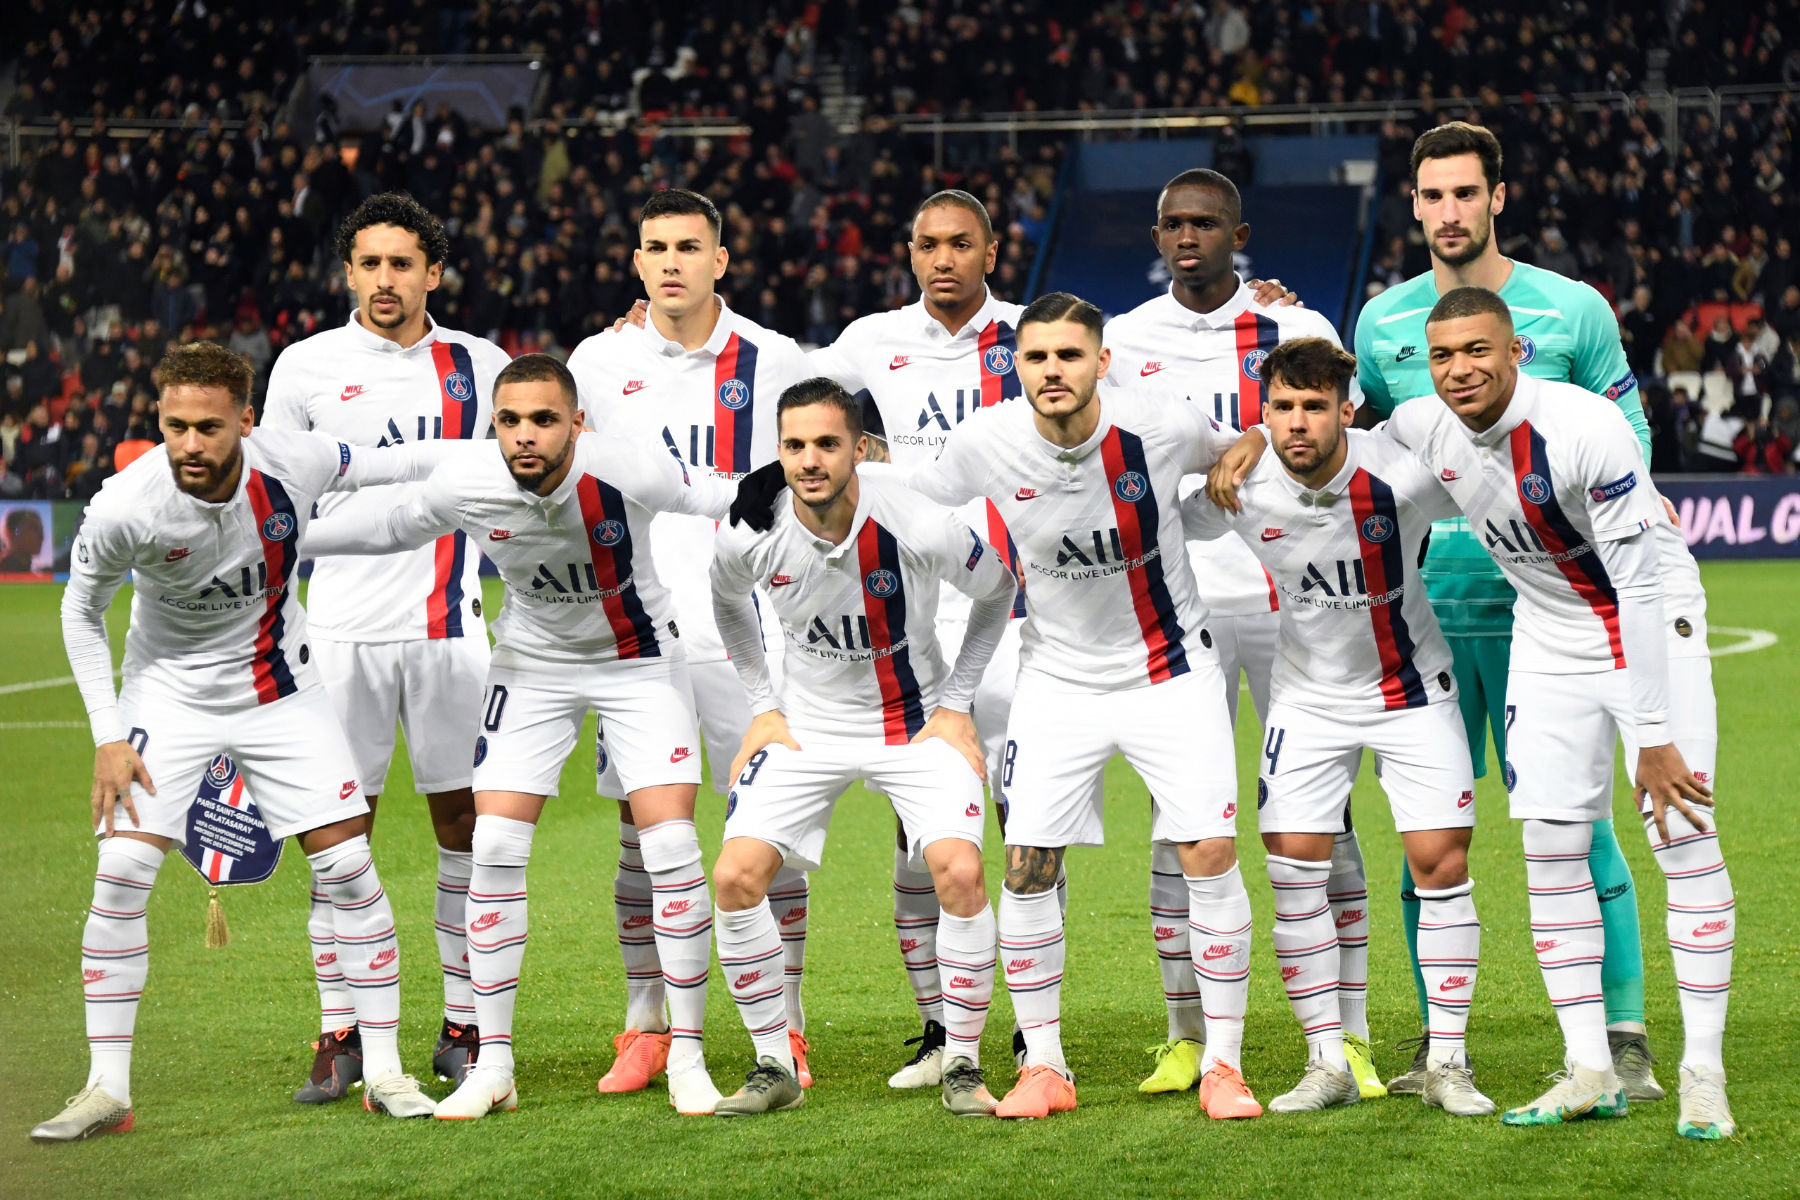 Ranking Psg S Potential Champions League Round Of 16 Opponents Psg Talk